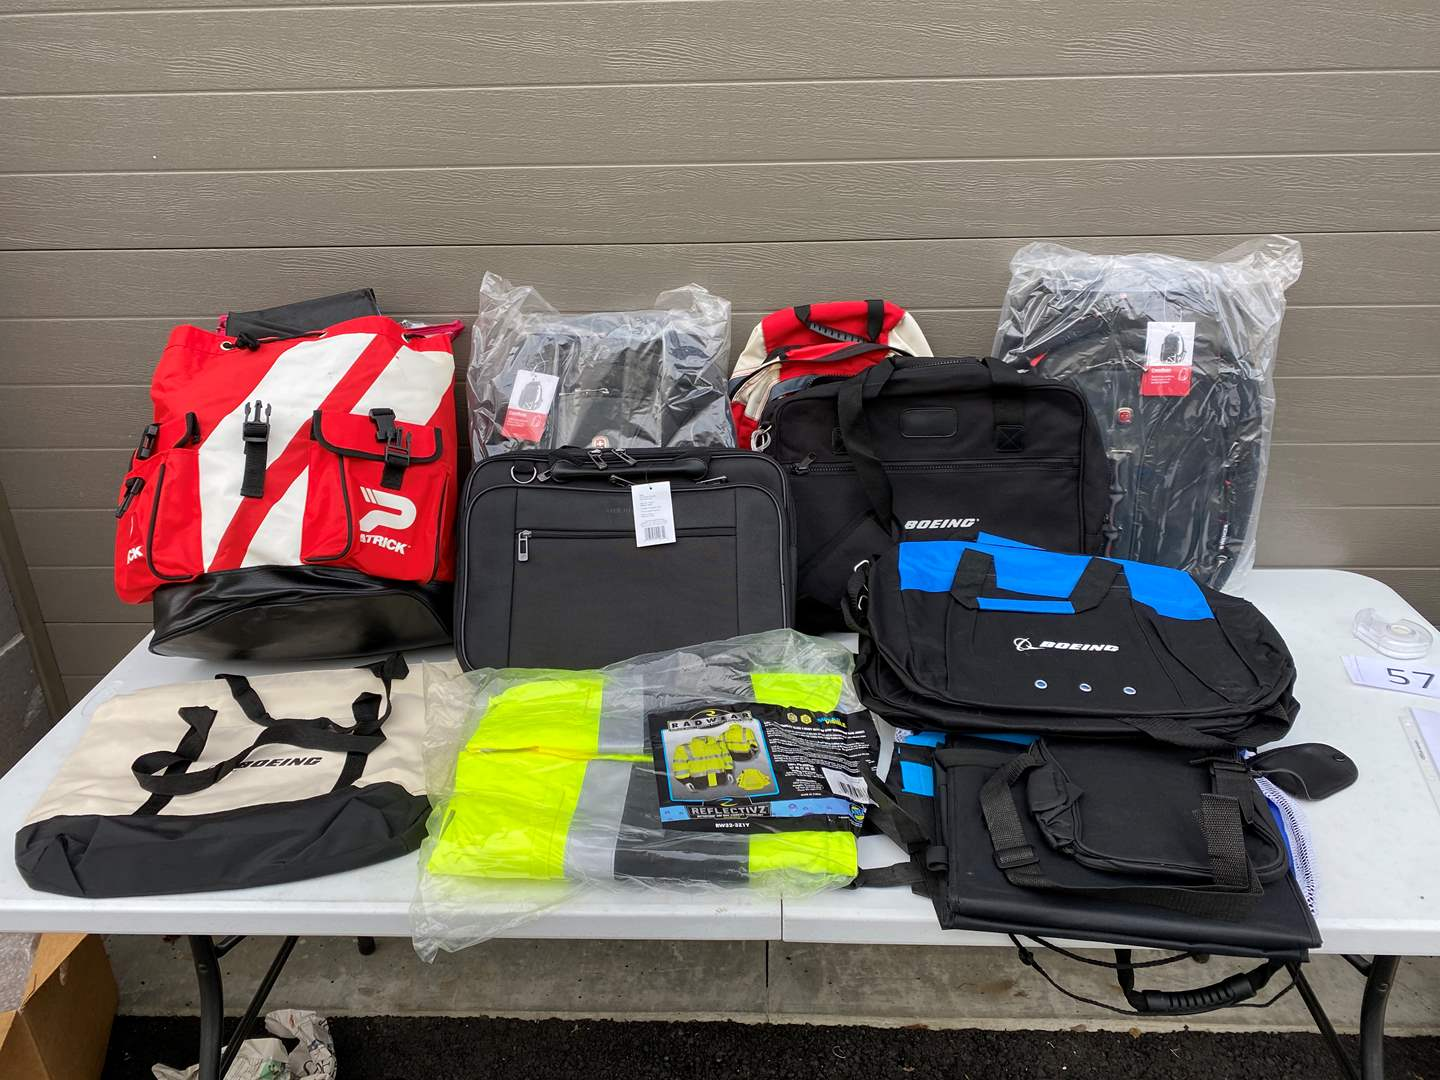 Lot # 58 - New Laptop Bags, Boeing Totes, New Safety Jackets & New Backpacks (main image)